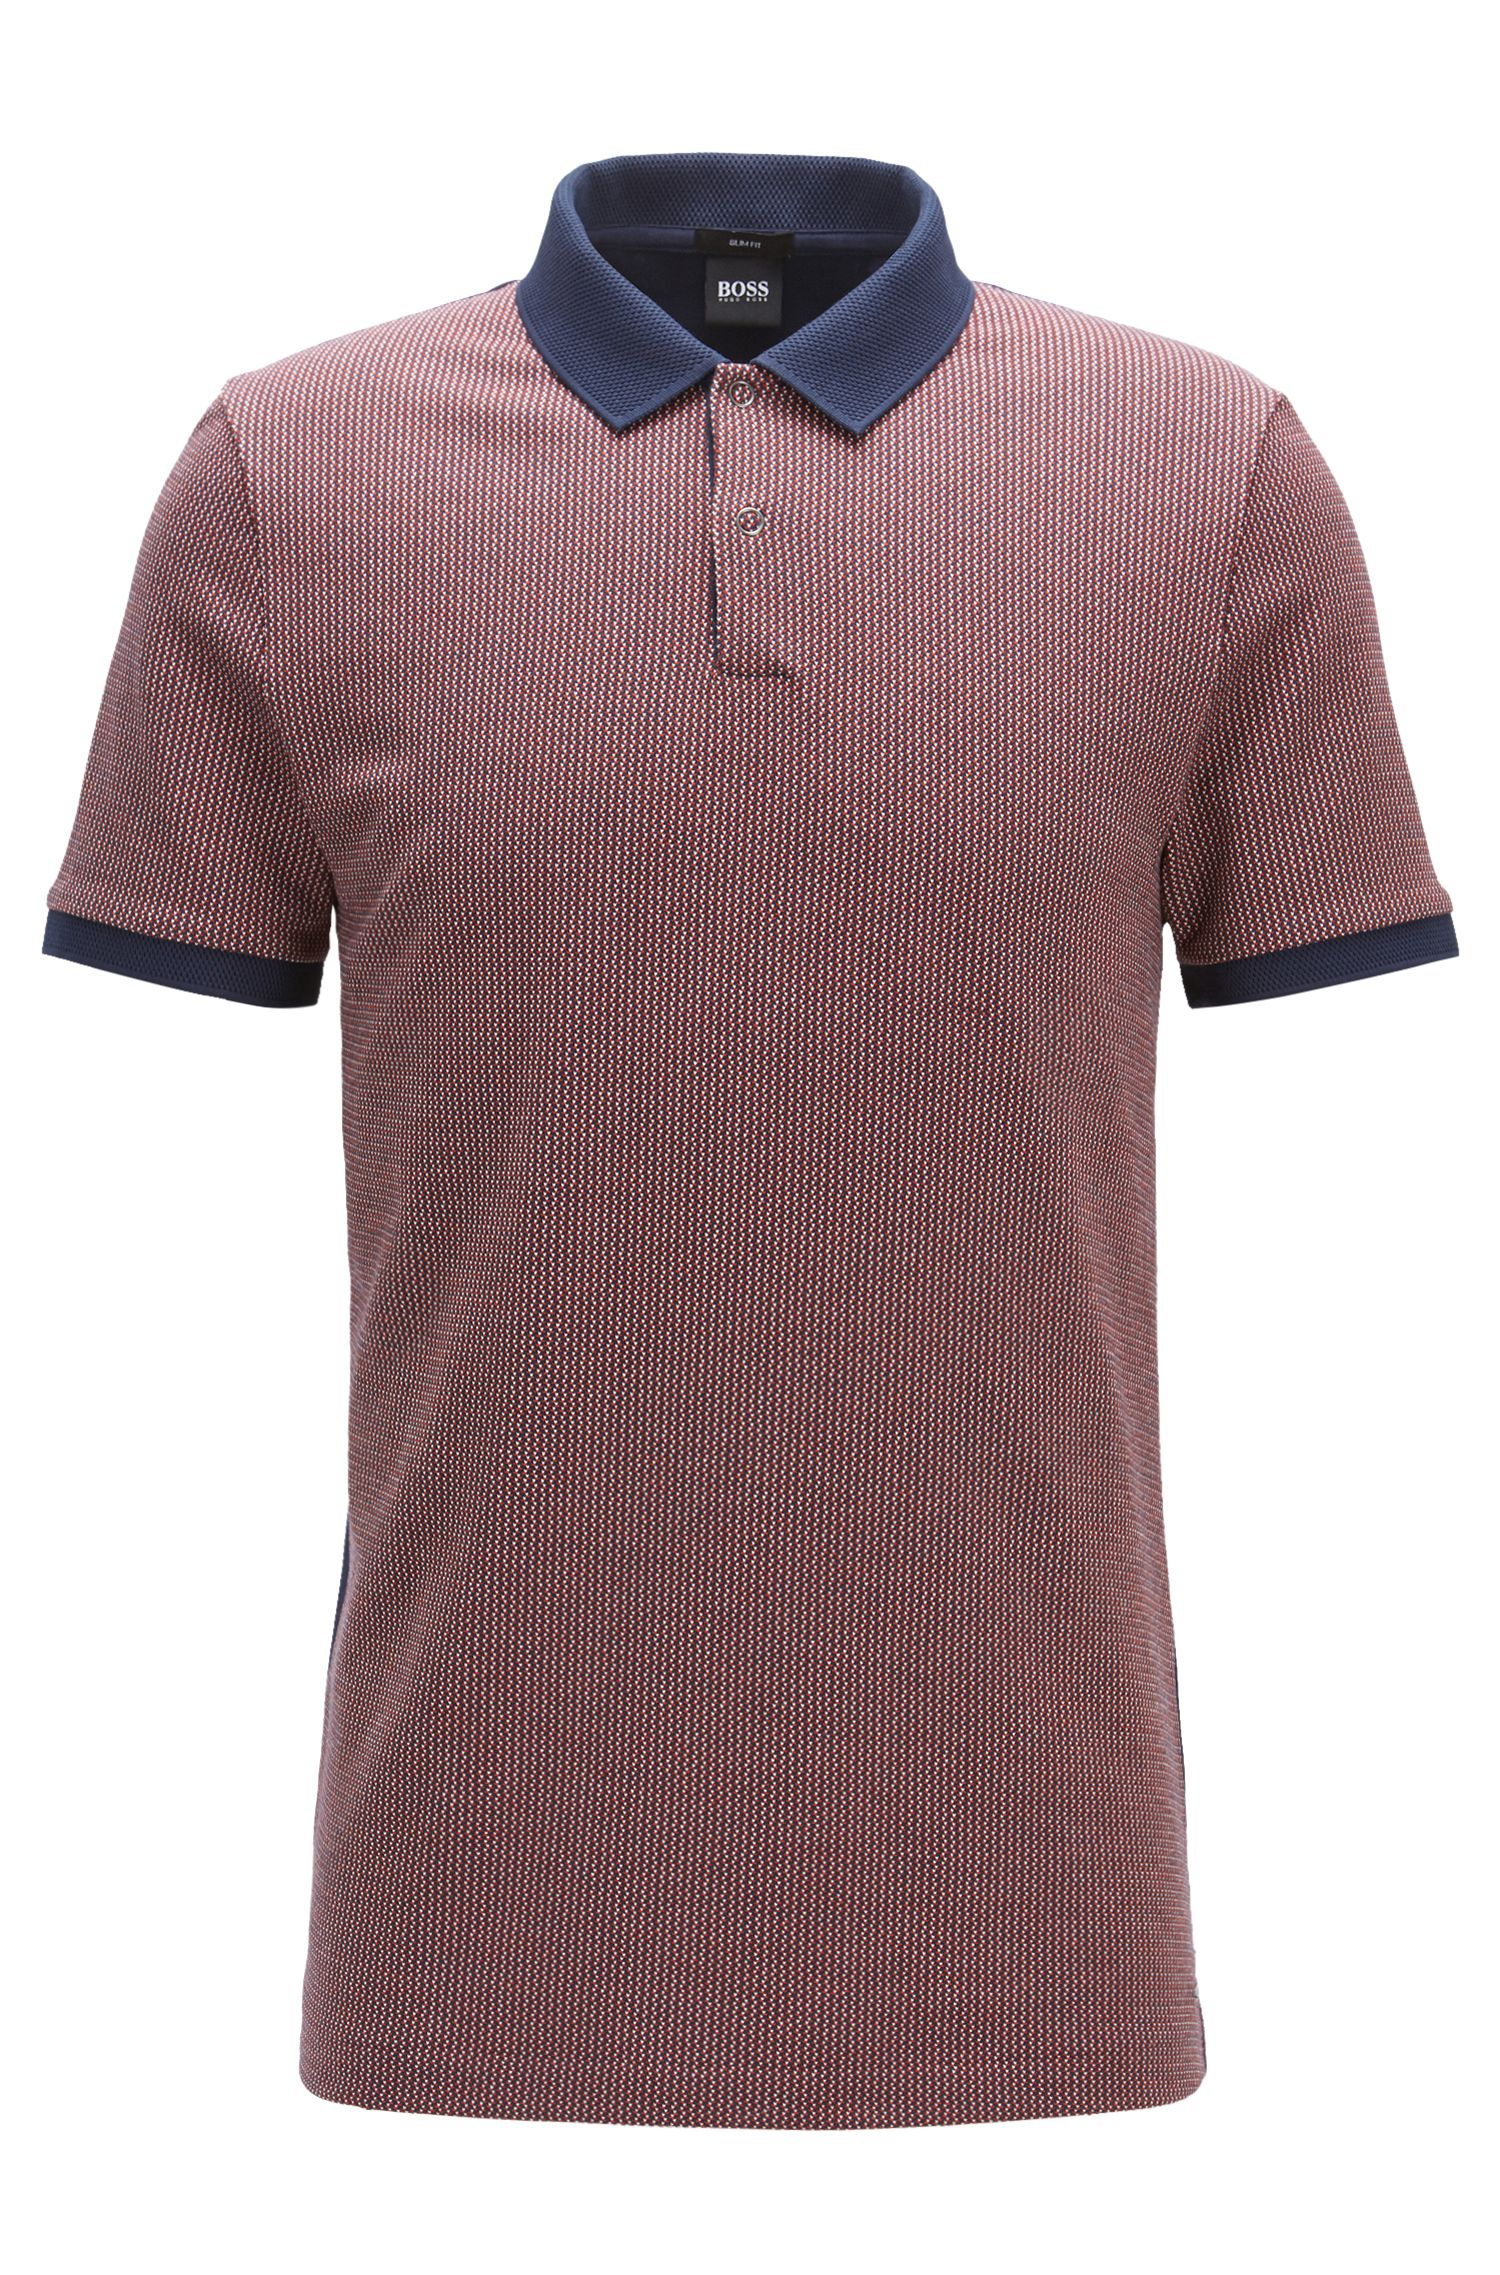 Knit Cotton Polo Shirt, Slim Fit | Pohl, Dark Blue